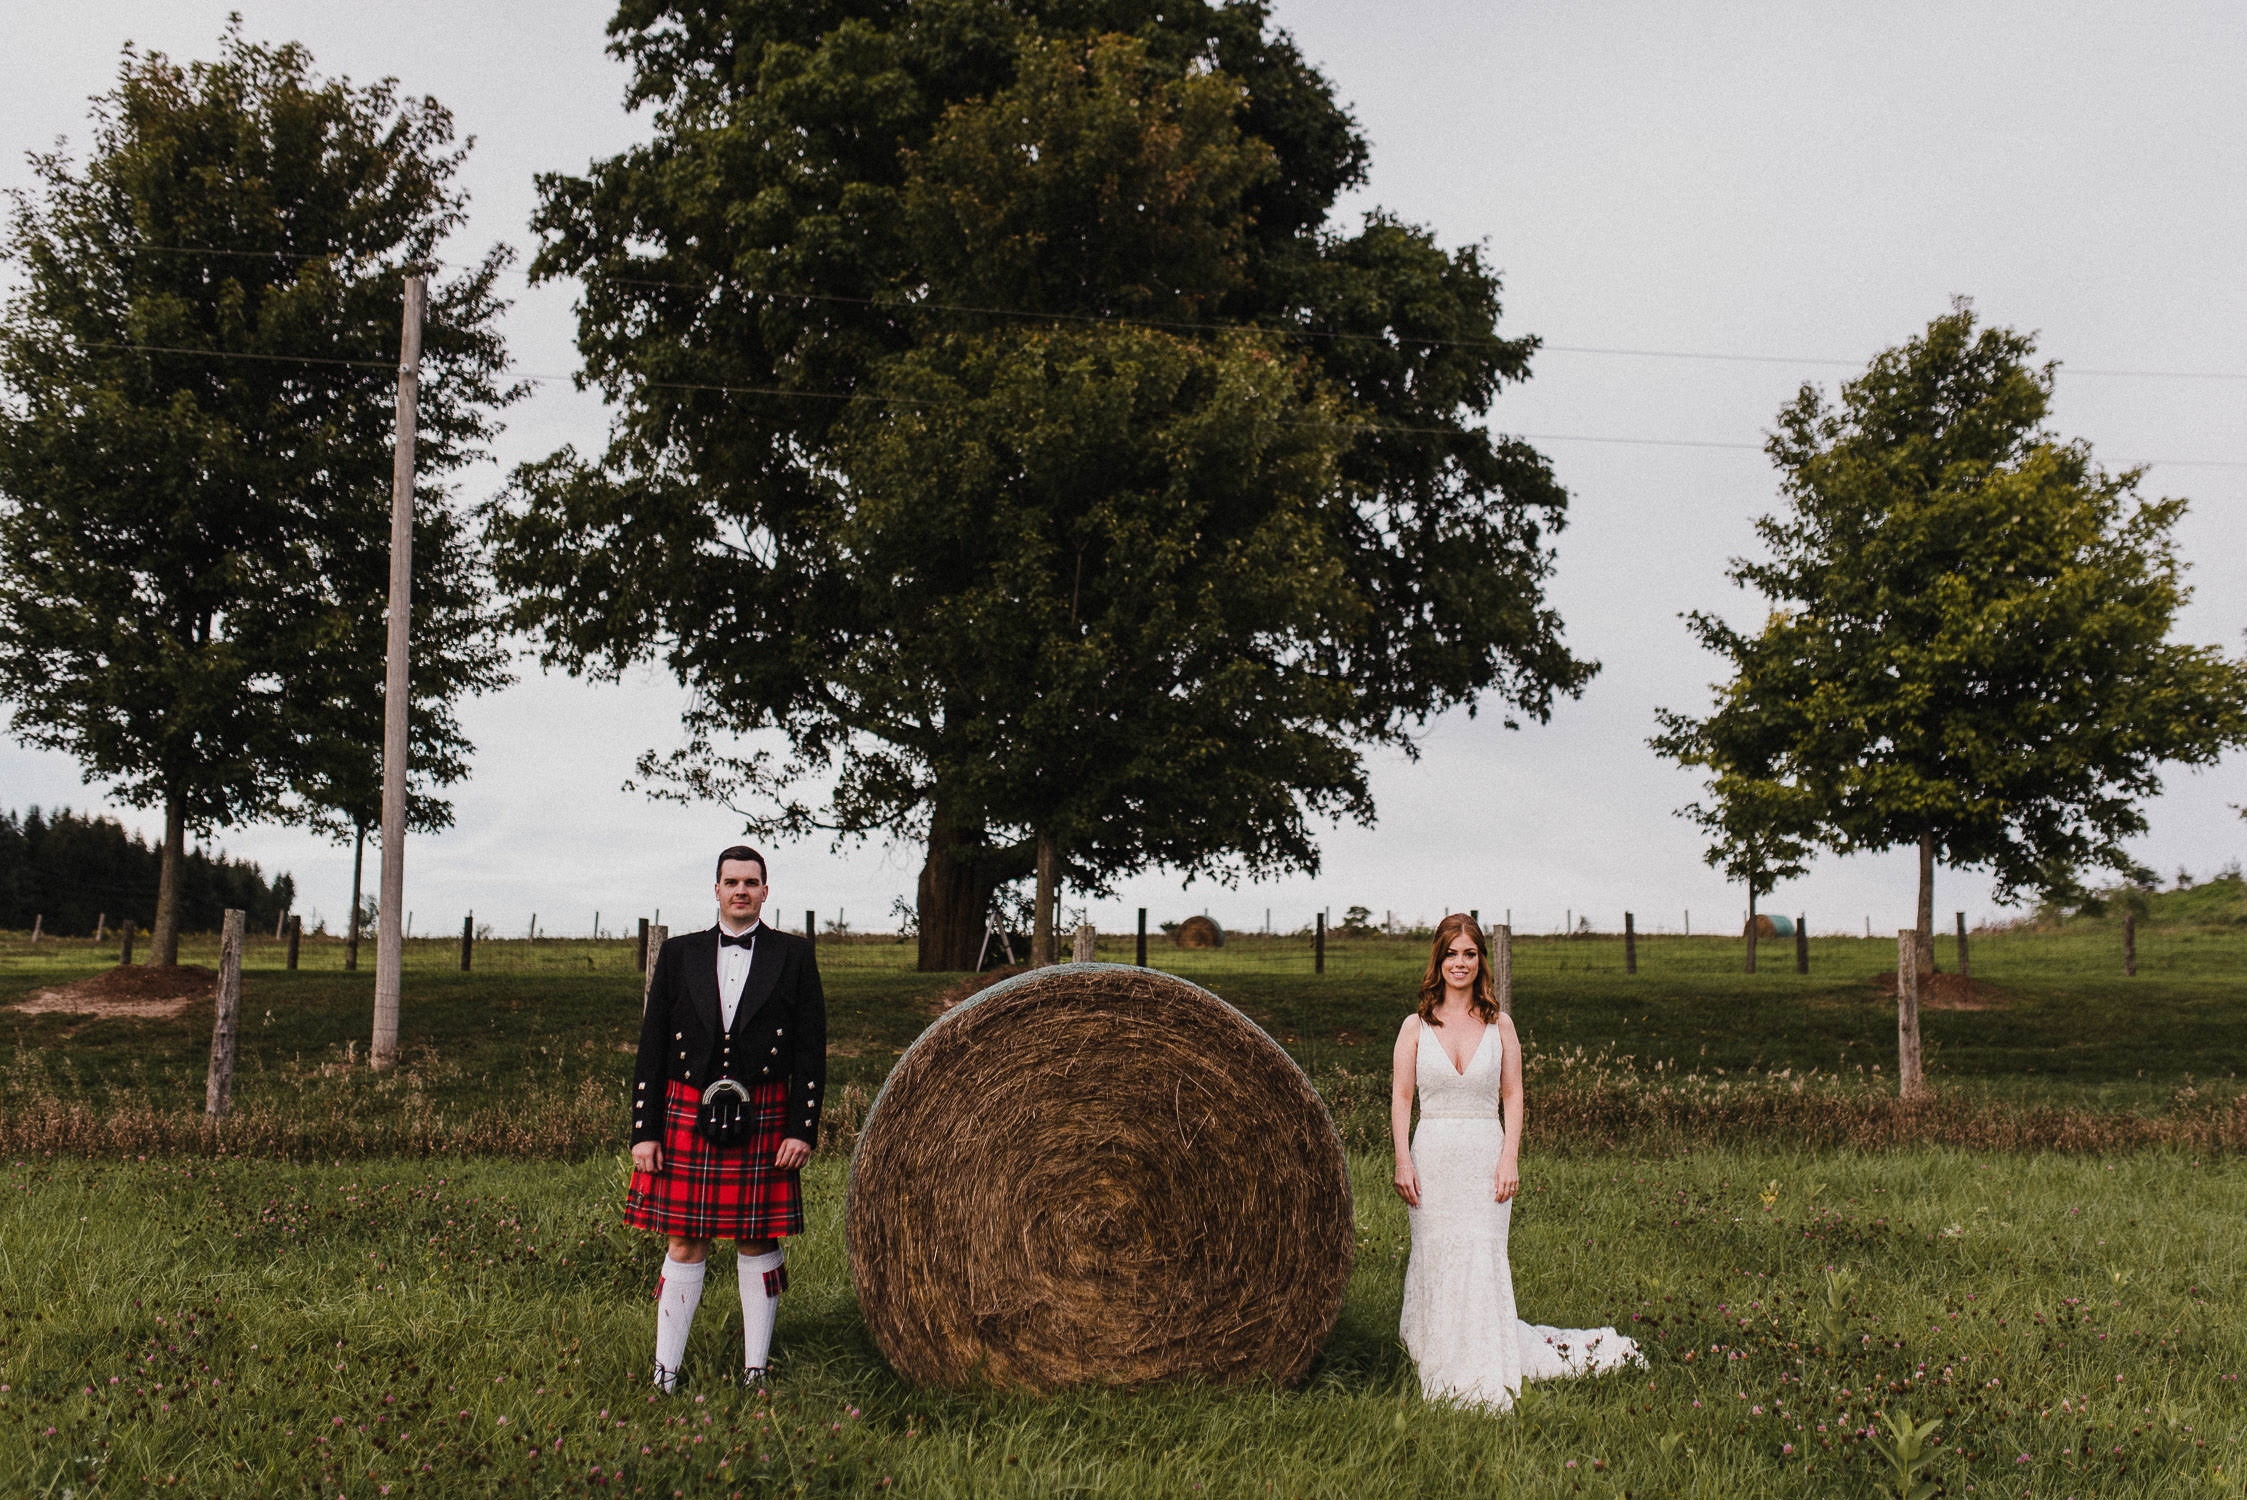 The bride and groom pose beside a haystack on the farm after their wedding ceremony at Cambium Farm.